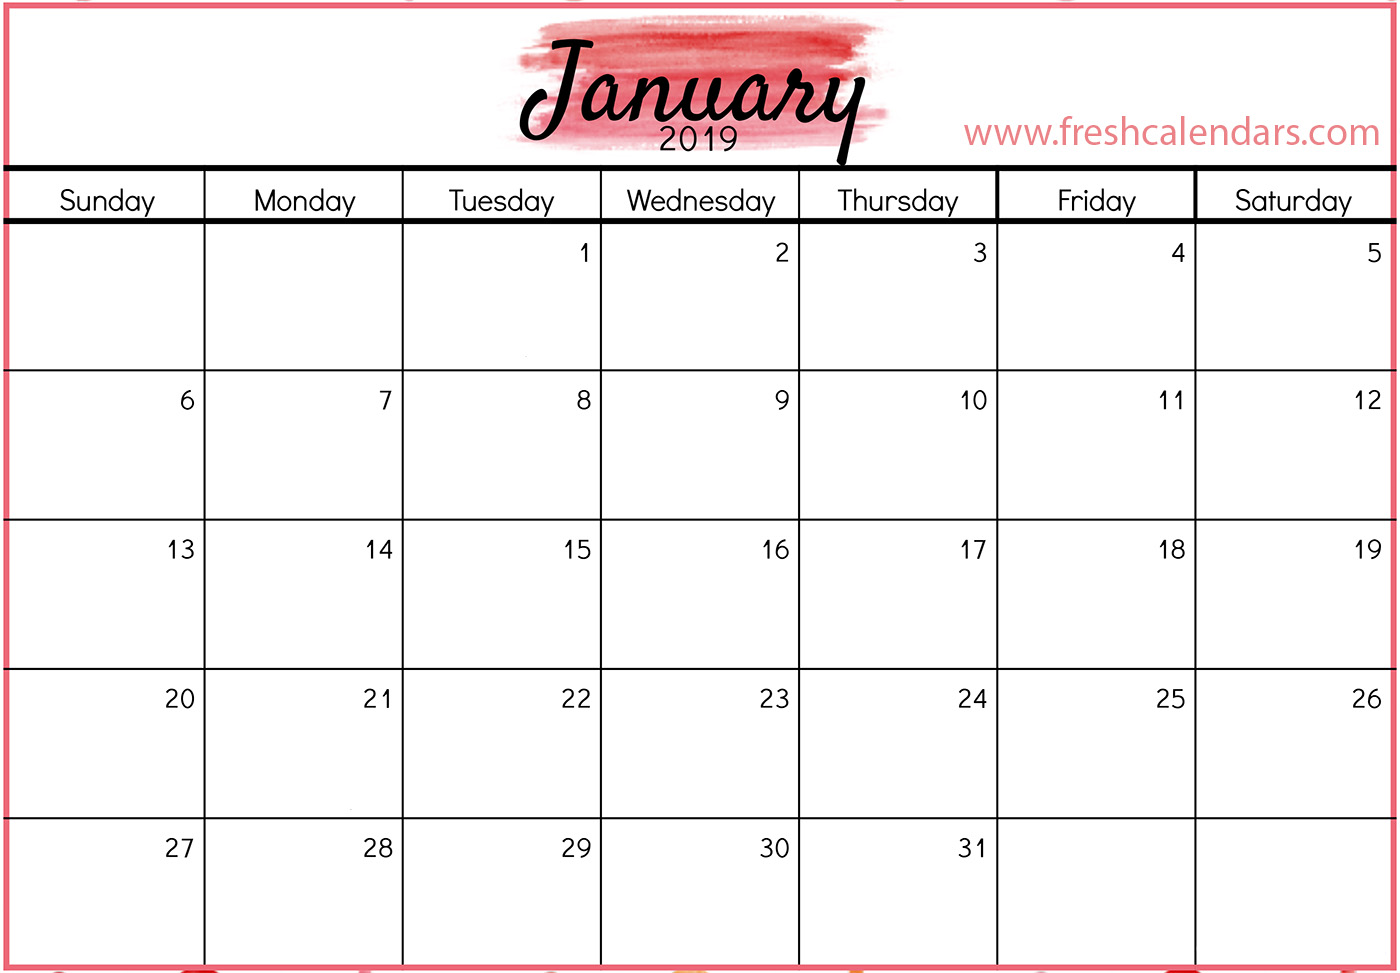 January Calendar 2019 Free Printable Calendar Templates And Holidays